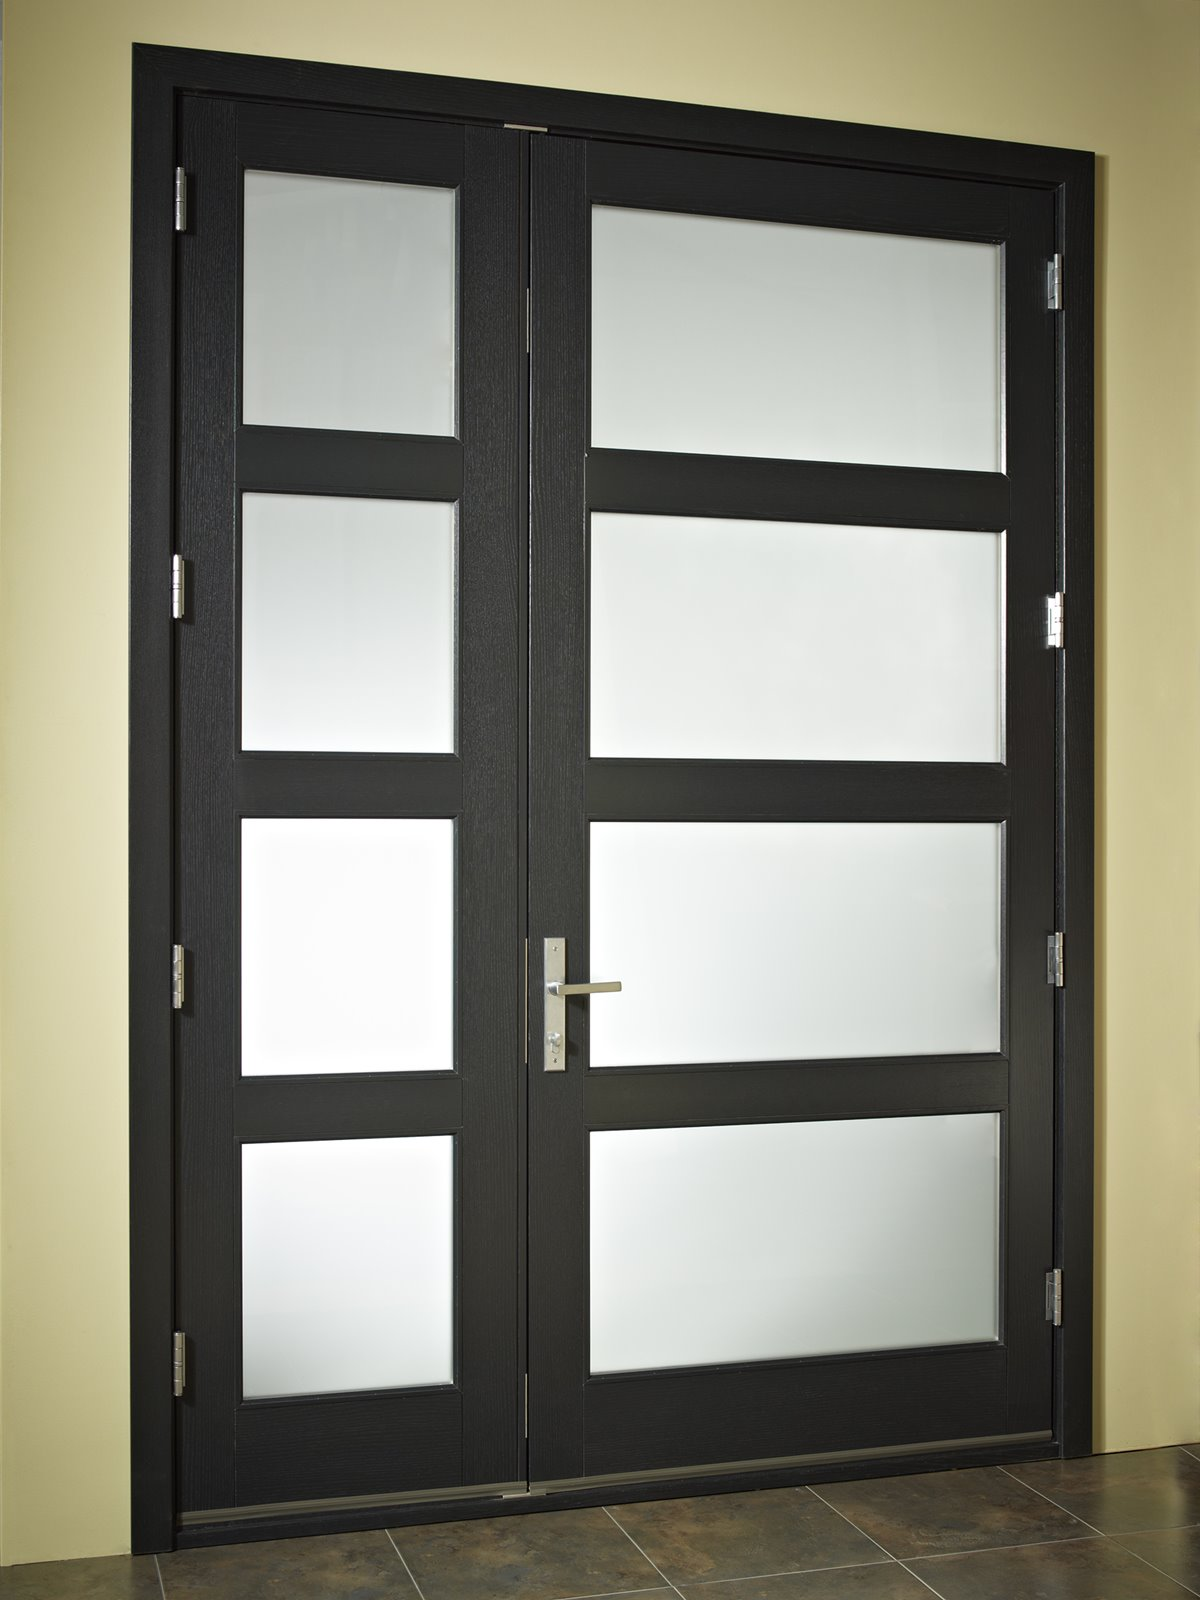 Trend Minimalist Door Design Ideas In 2015 | 4 Home Ideas